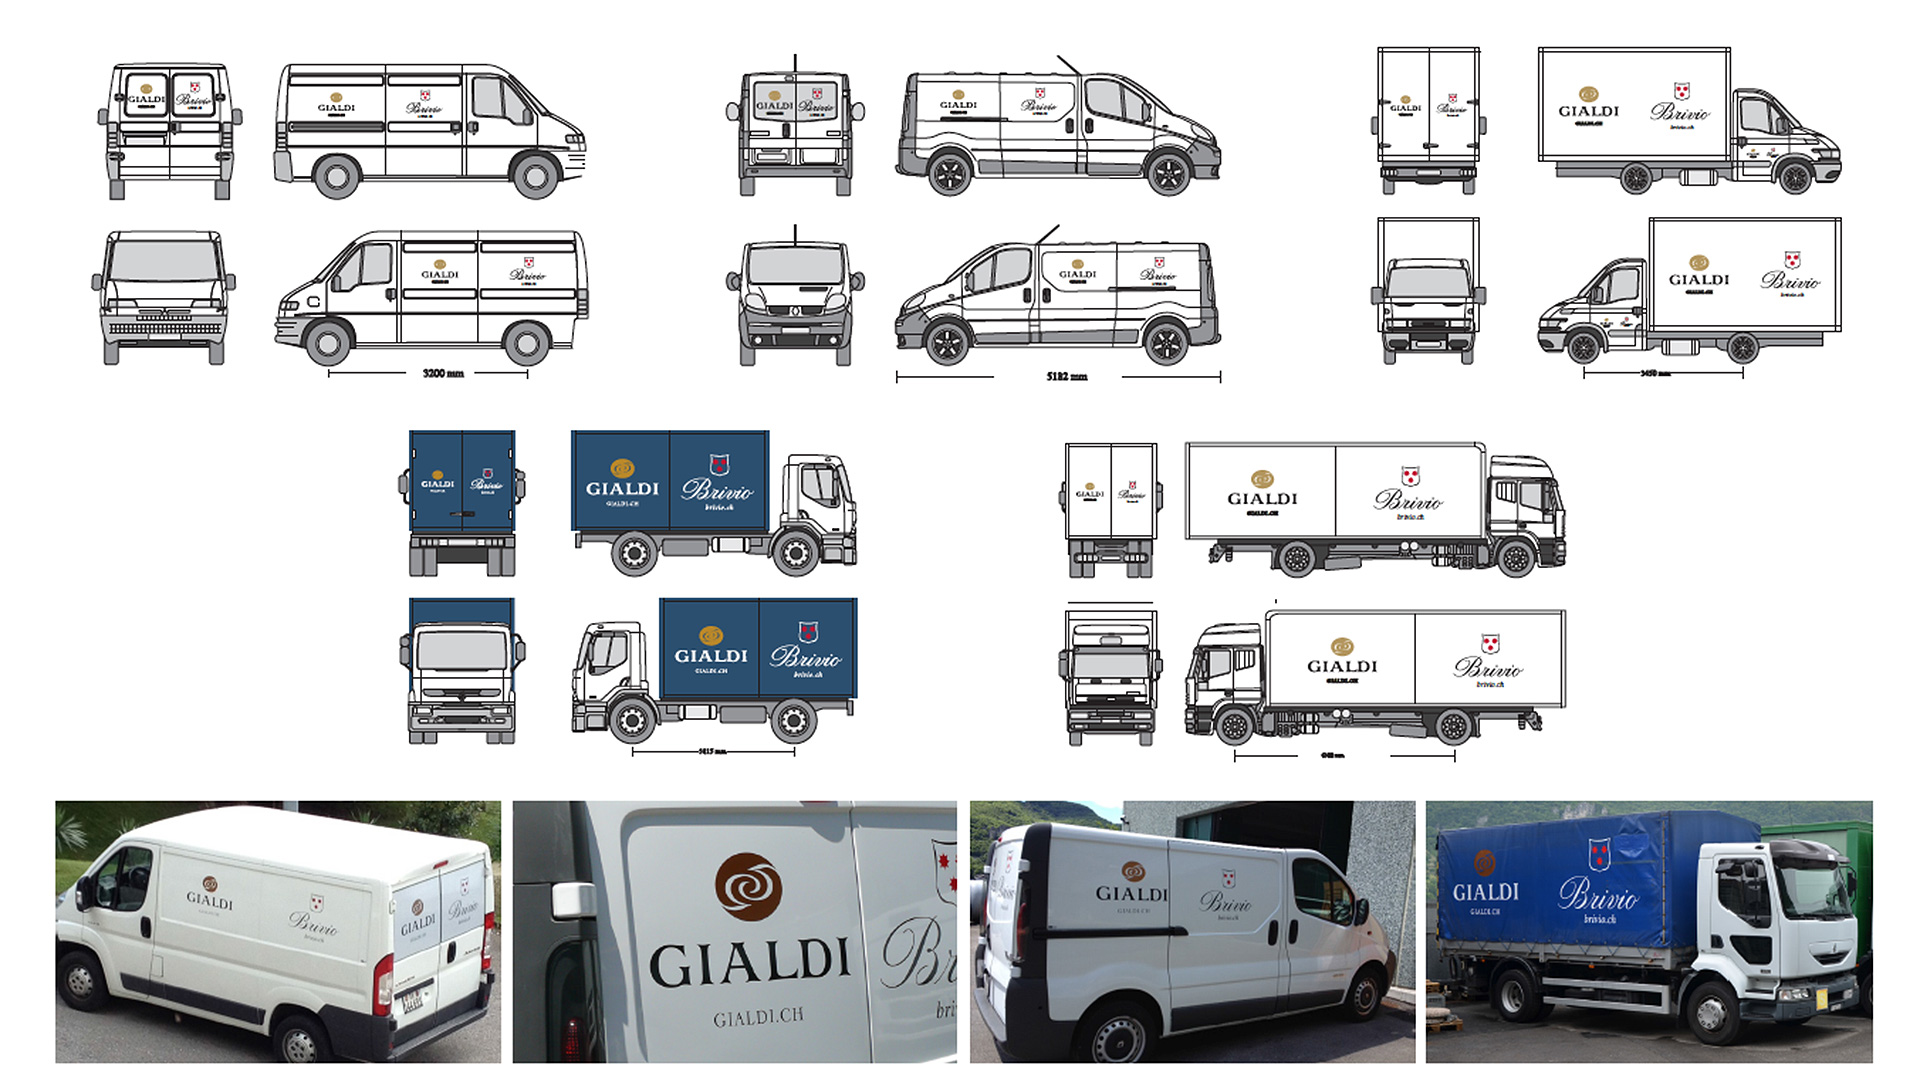 Gialdi automezzi global design